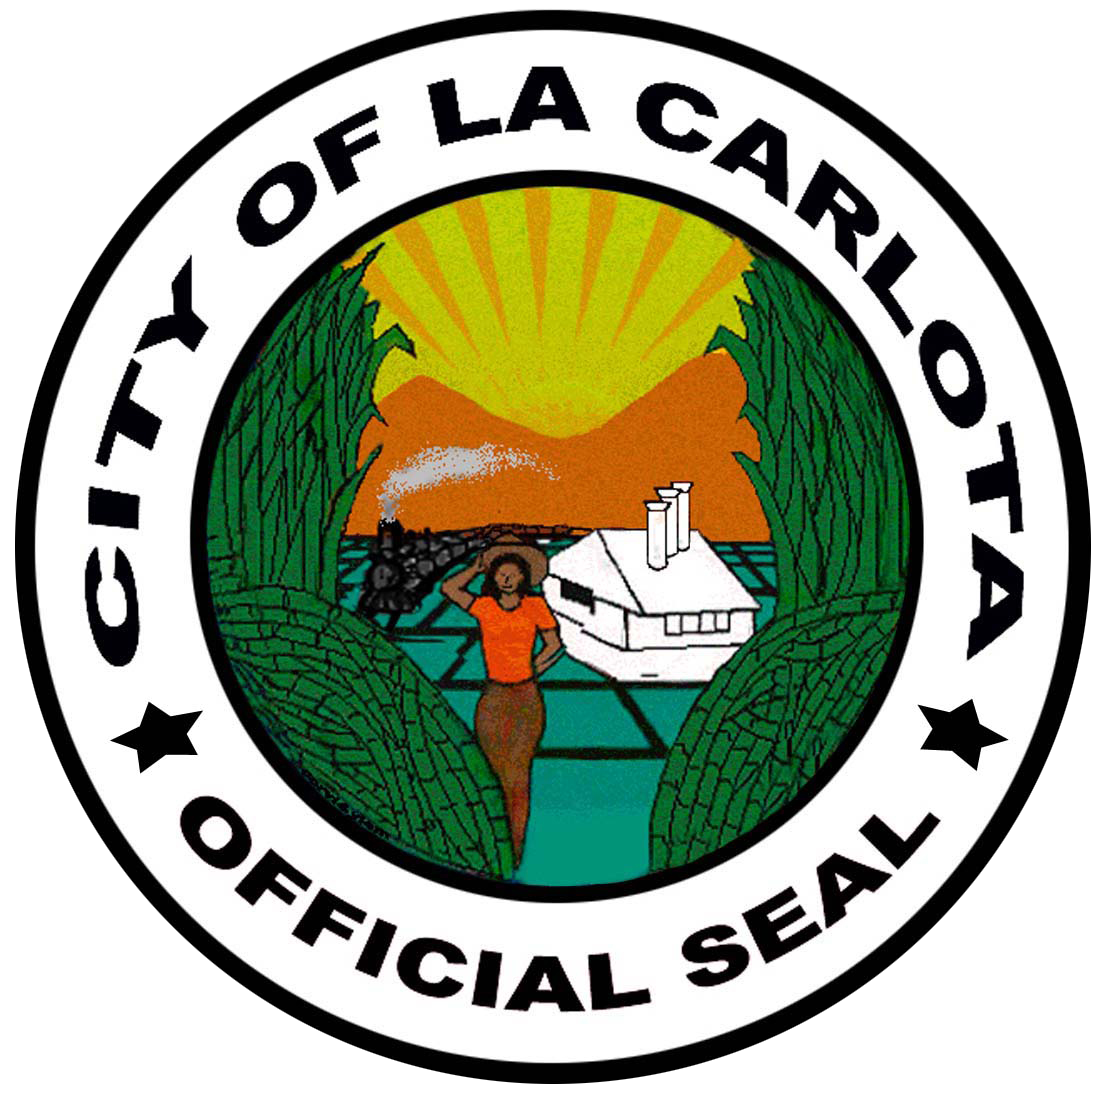 CITY OF LA CARLOTA Official Logo